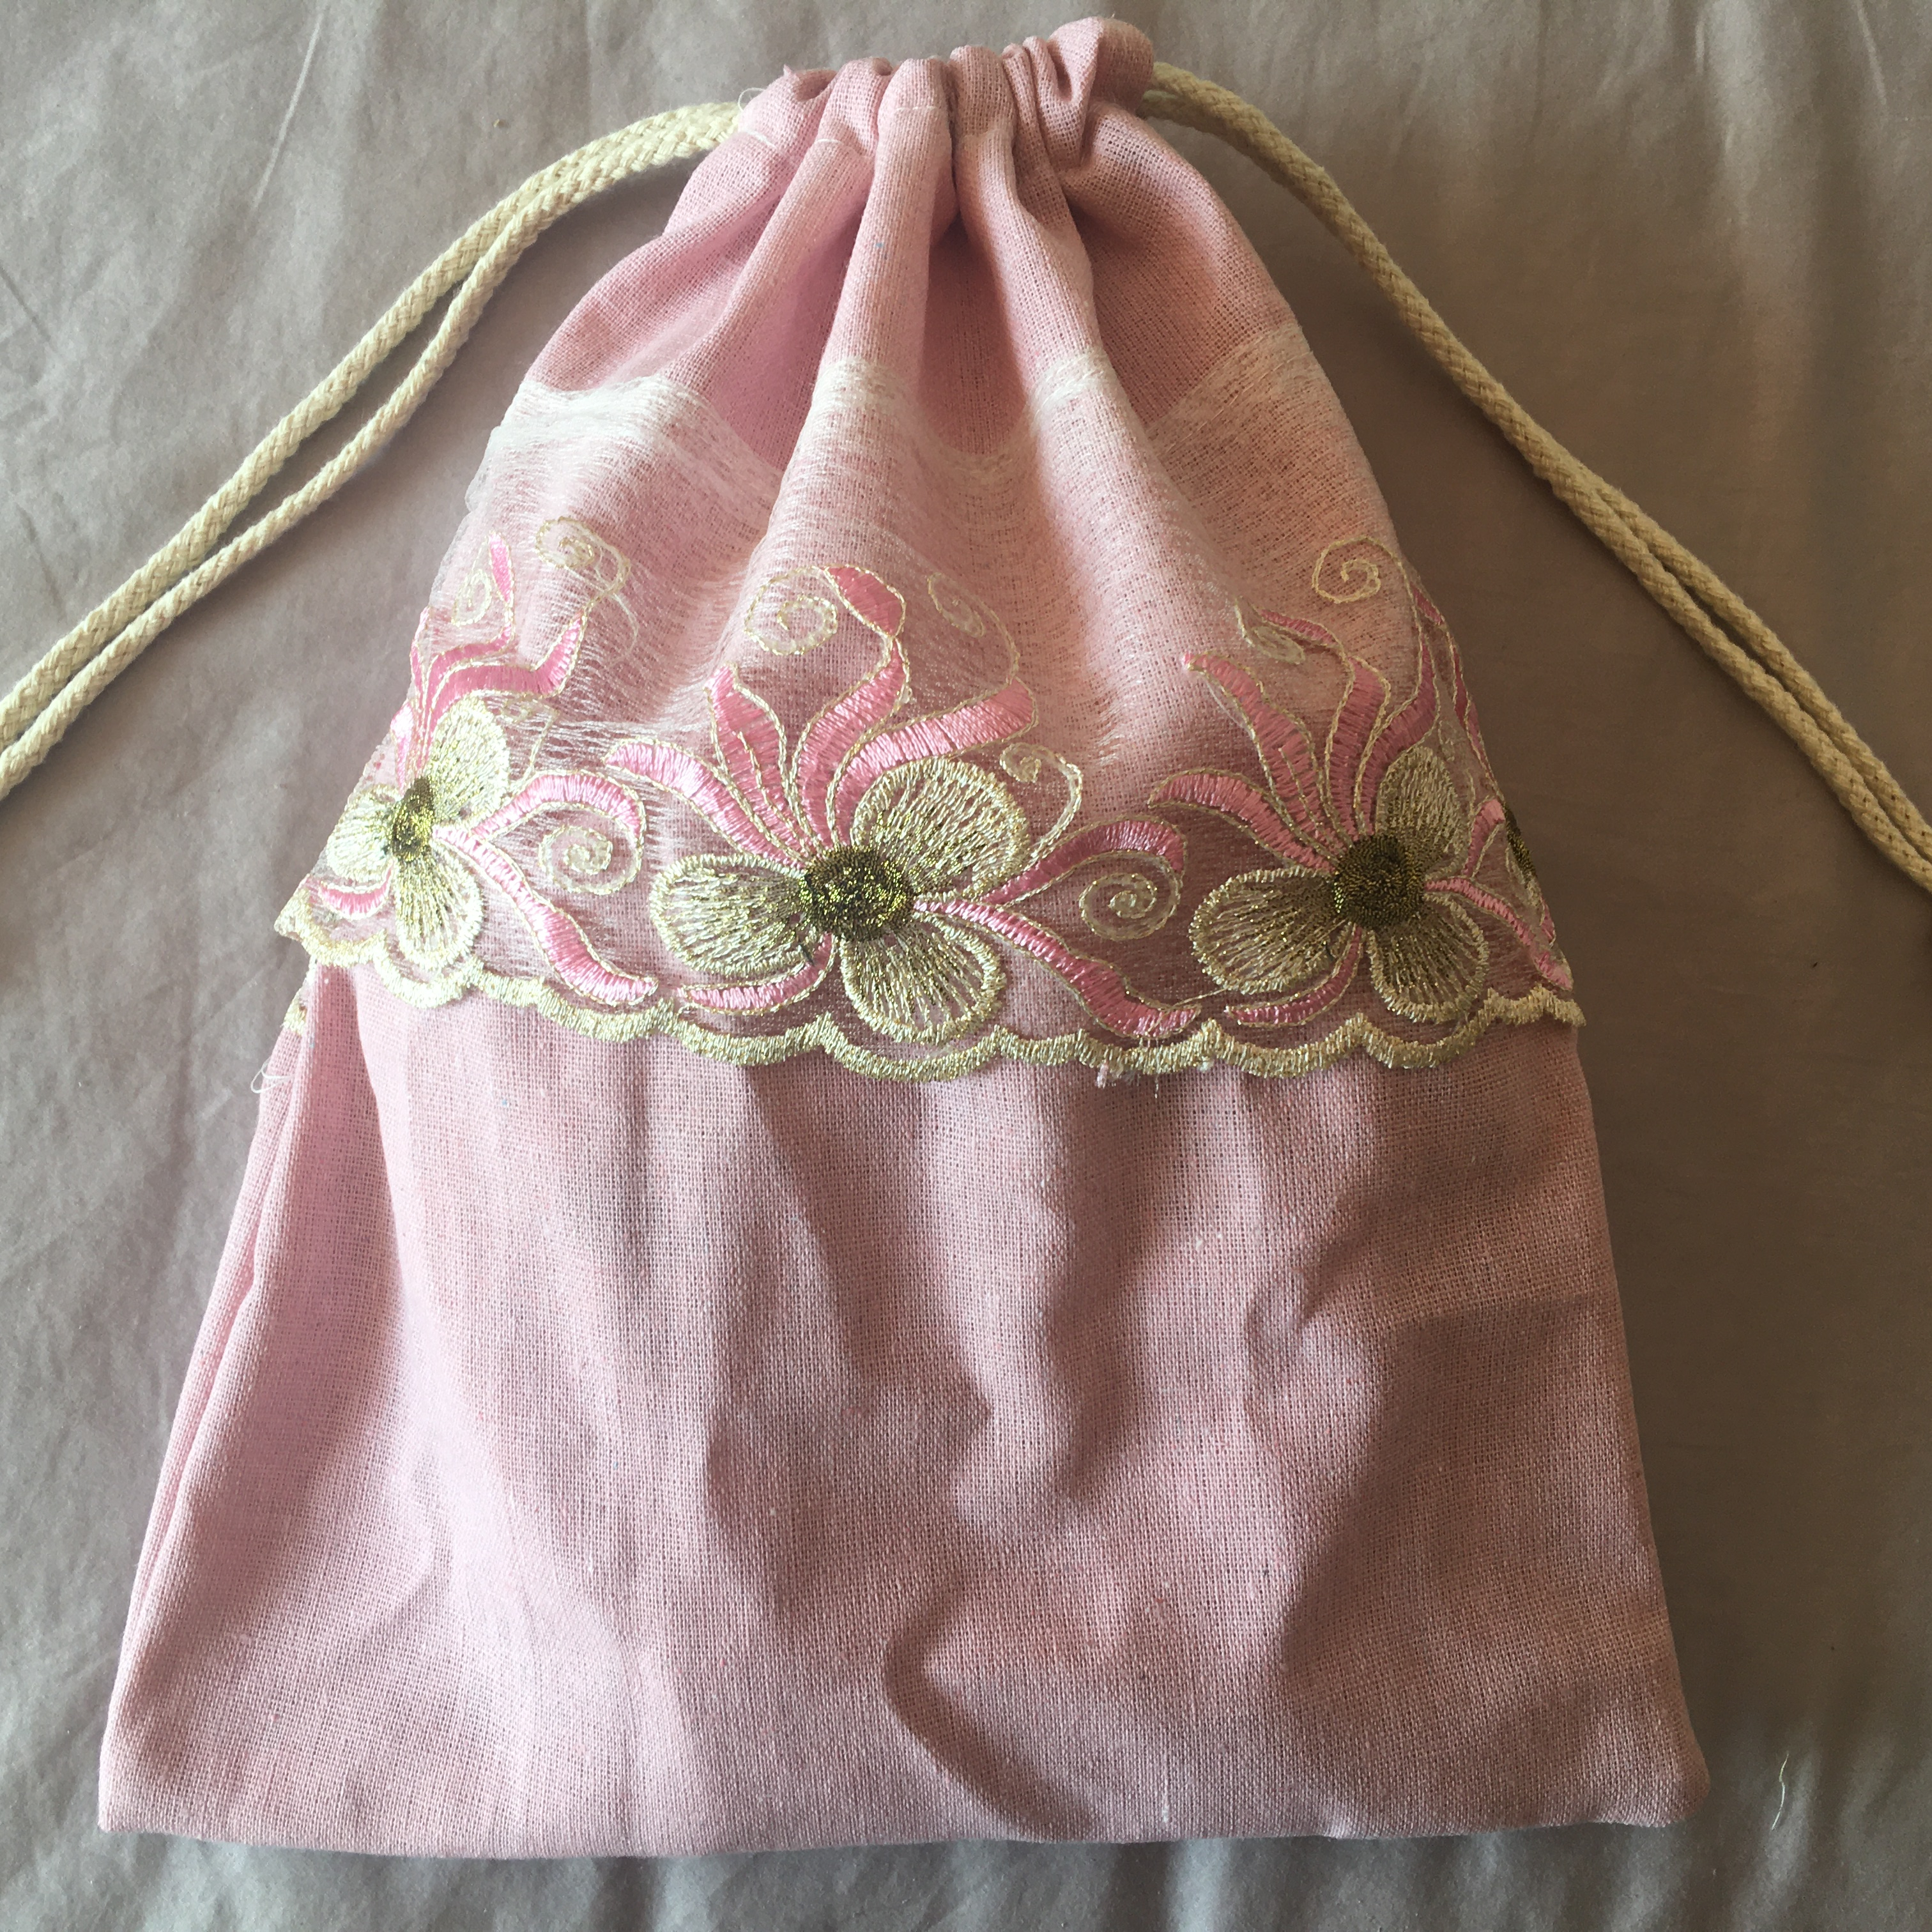 1pc Cotton Linen Drawstring Eco Organized Pouch Party Gift Bag Embroidered Trim Pink YL320F